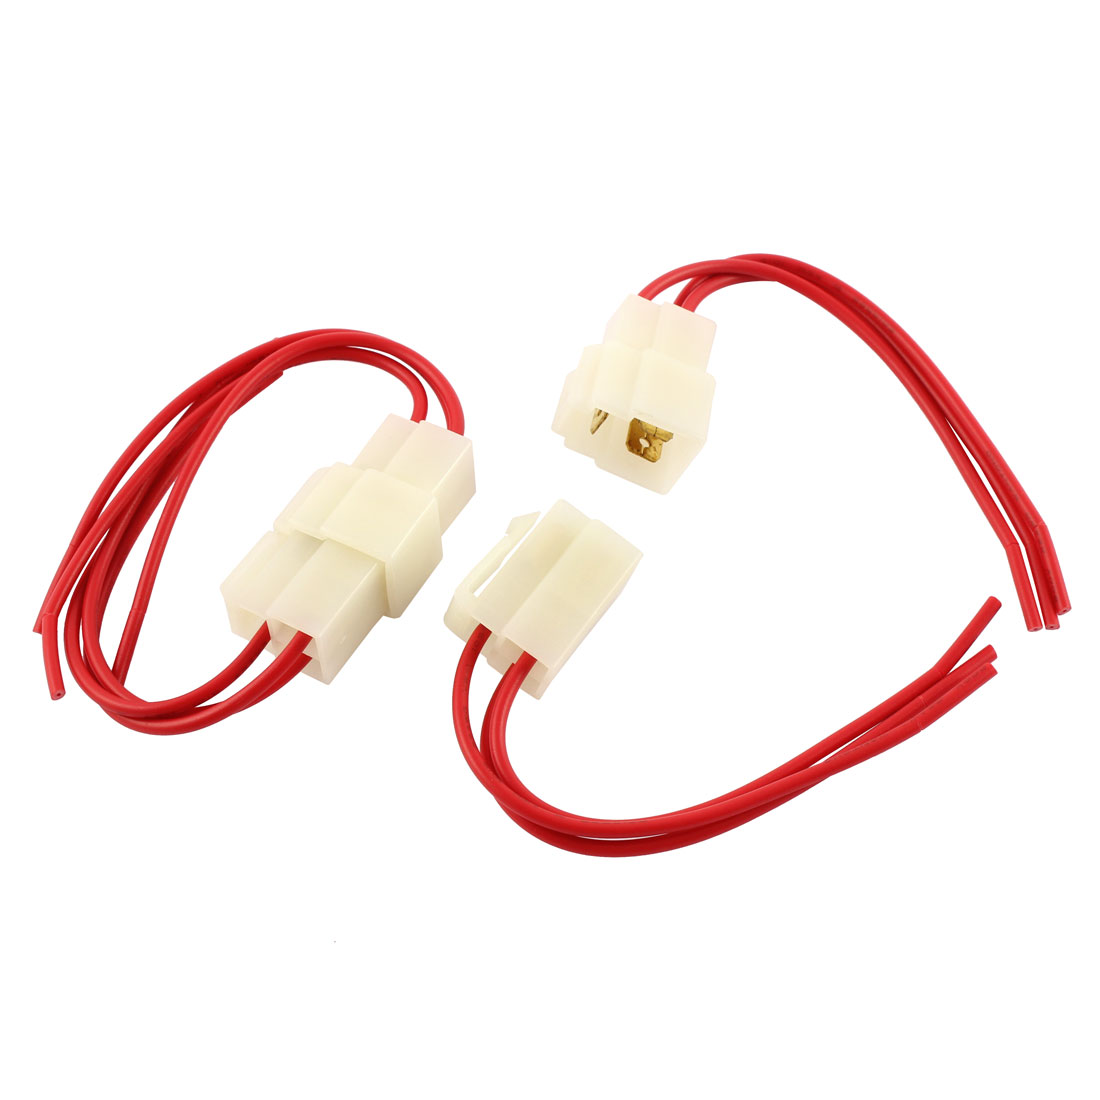 Vr3 car stereo wiring harness on car stereo connector Car Stereo Diagram Car Radio Wire Colors